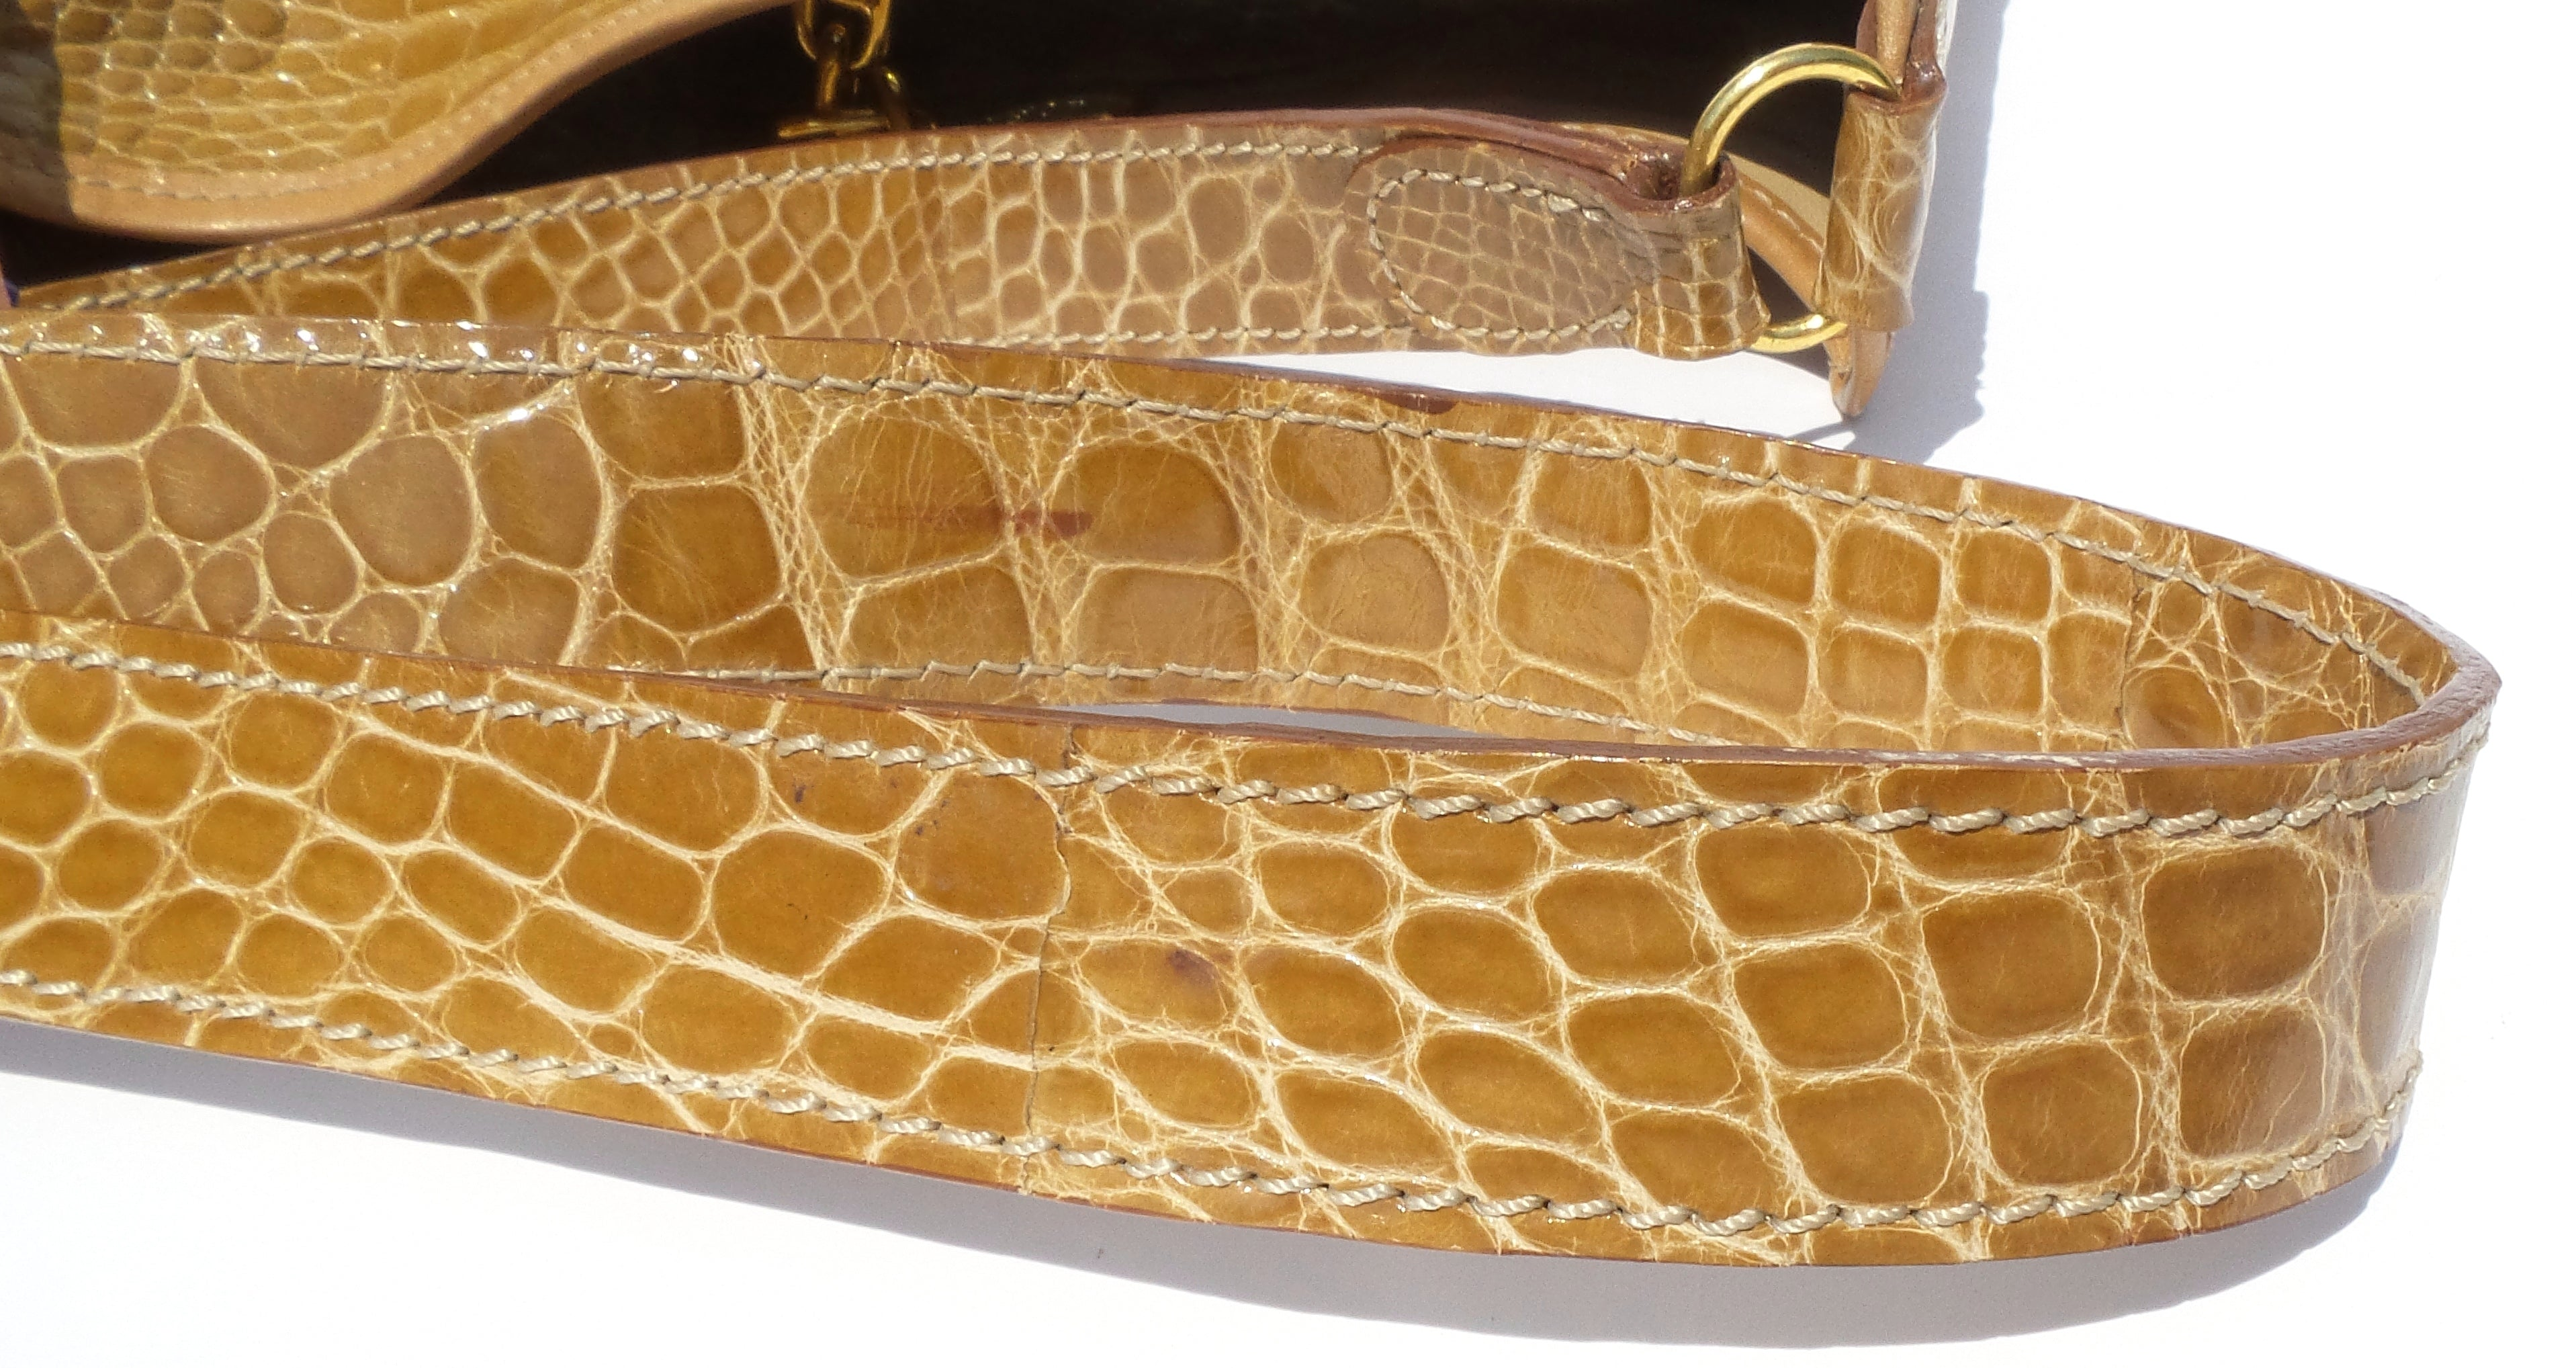 LORRAINE Italy Honey Tan Brown Crocodile Alligator Leather Gold HW Shoulder Bag